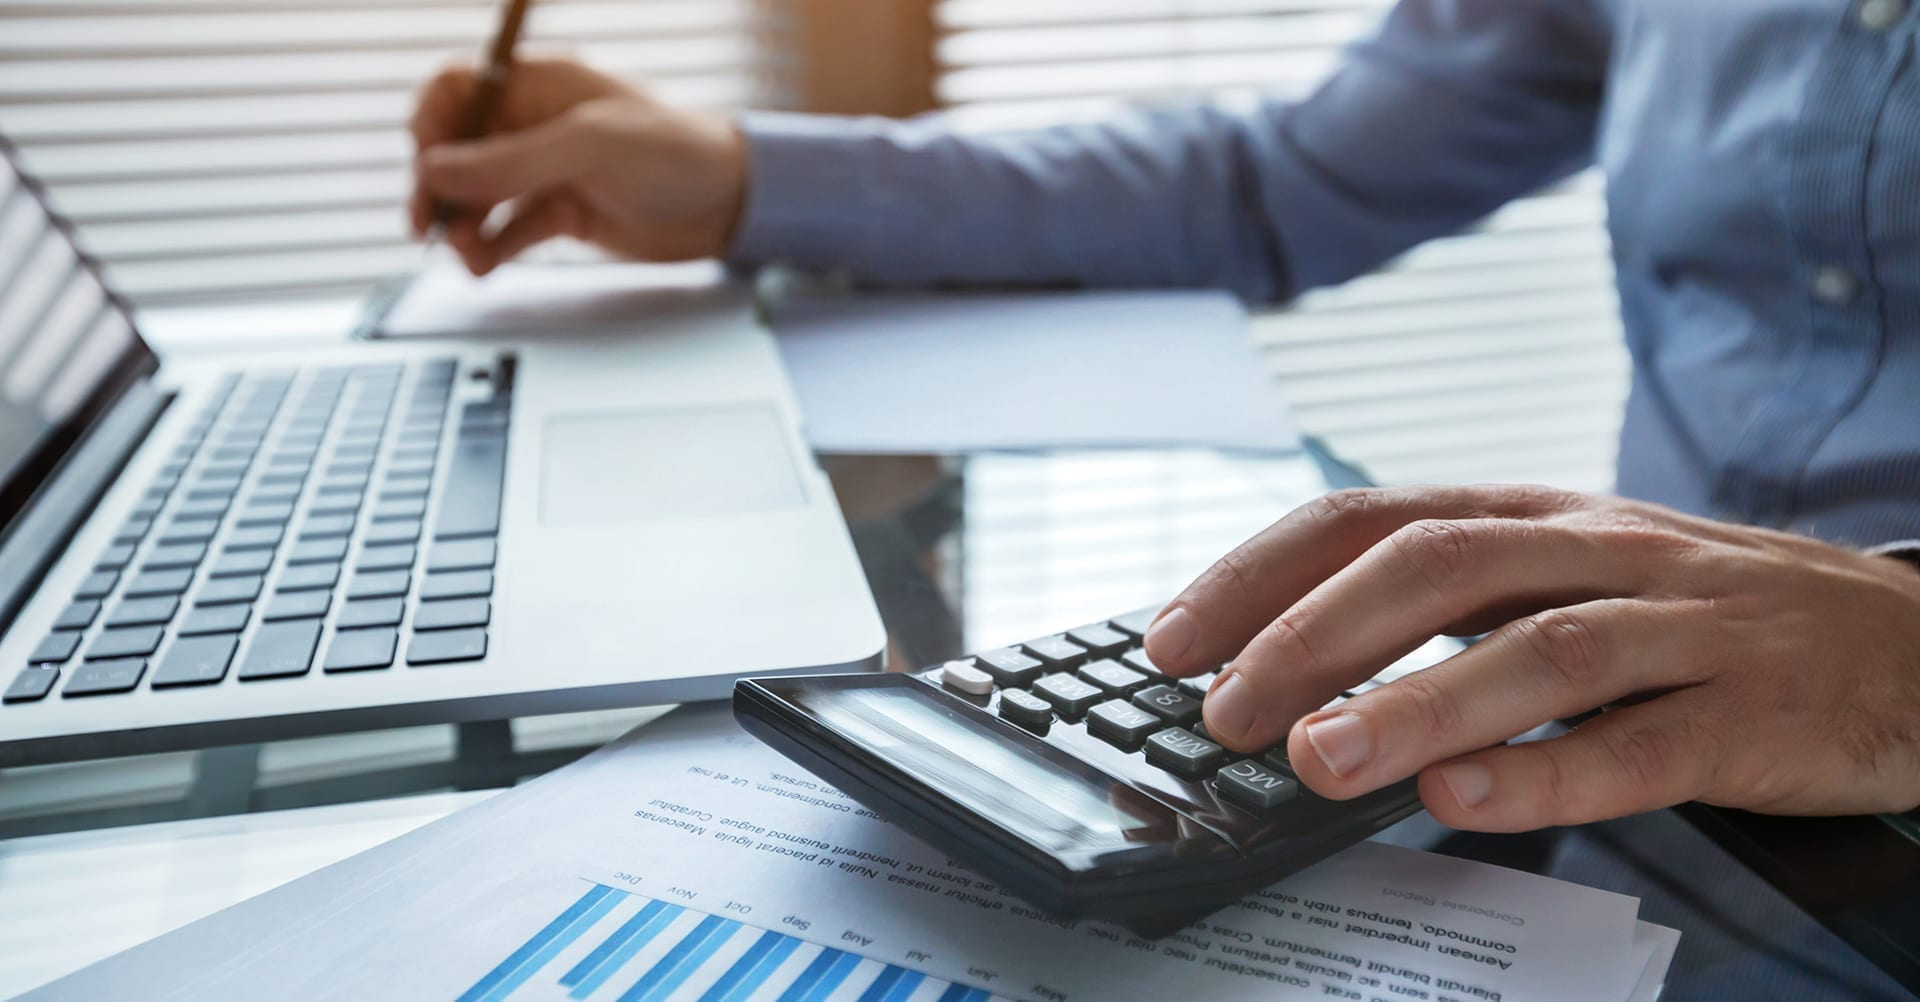 Cost Analysis with Computer and Calculator